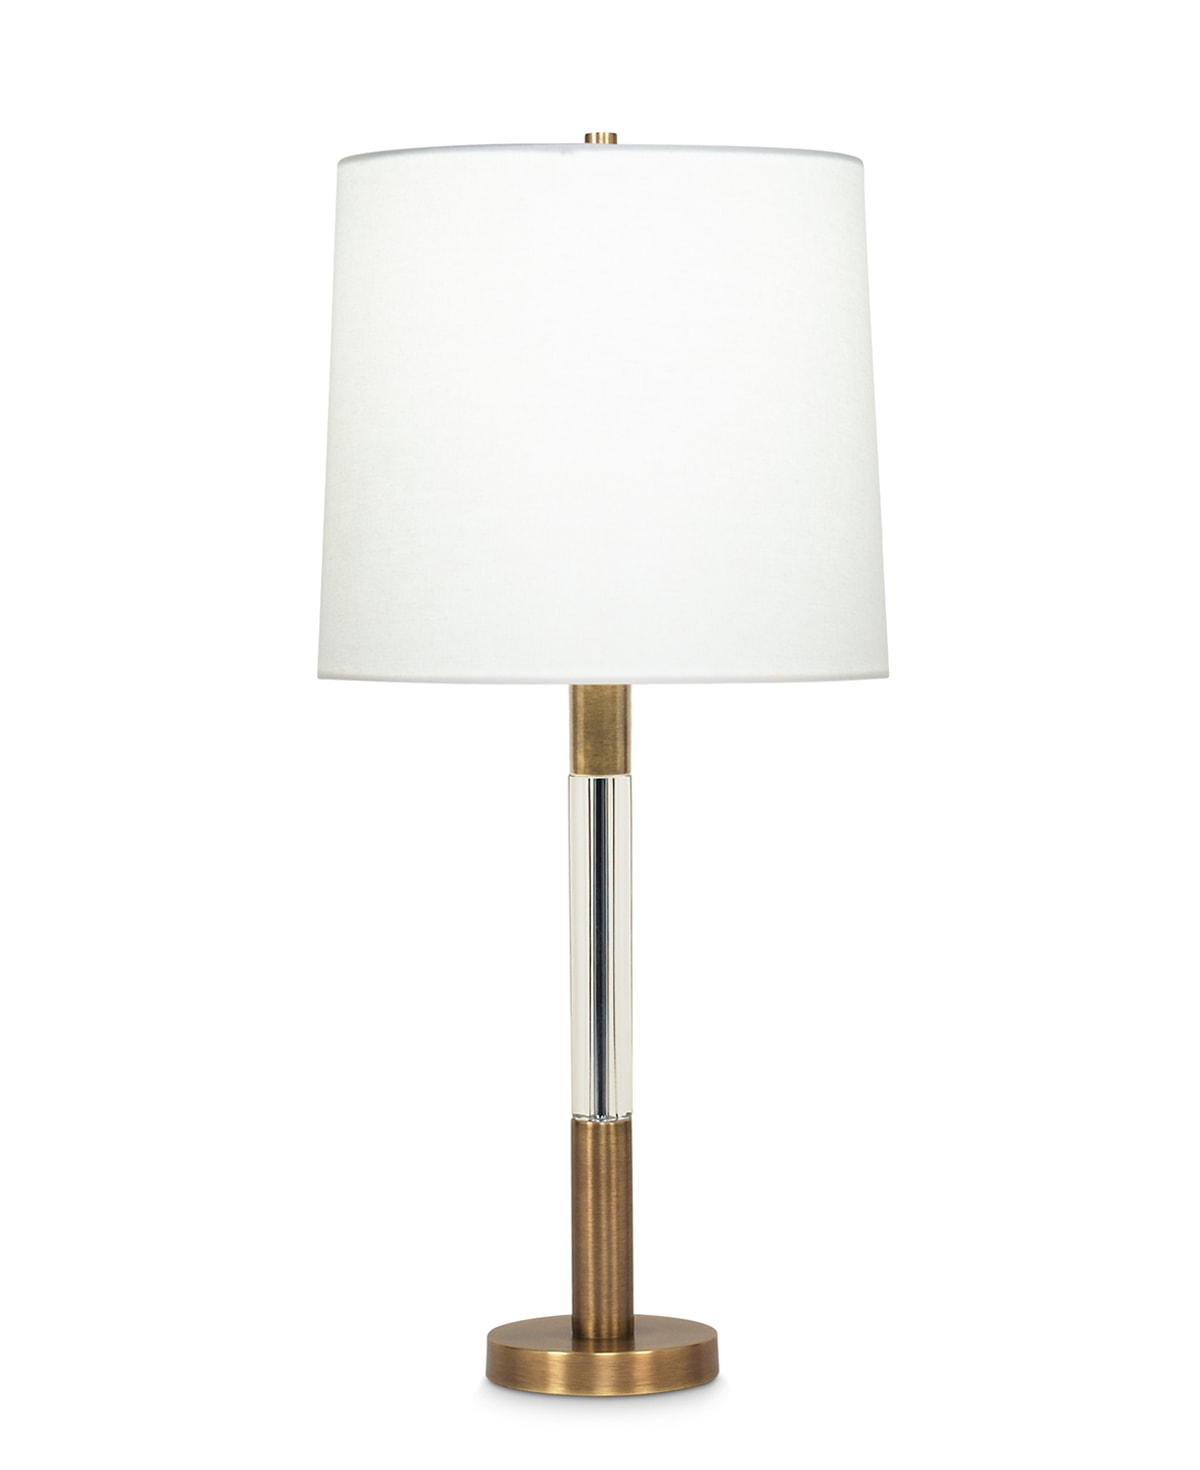 FlowDecor Severn Table Lamp in metal with antique brass finish and crystal and off-white linen tapered drum shade (# 3592)